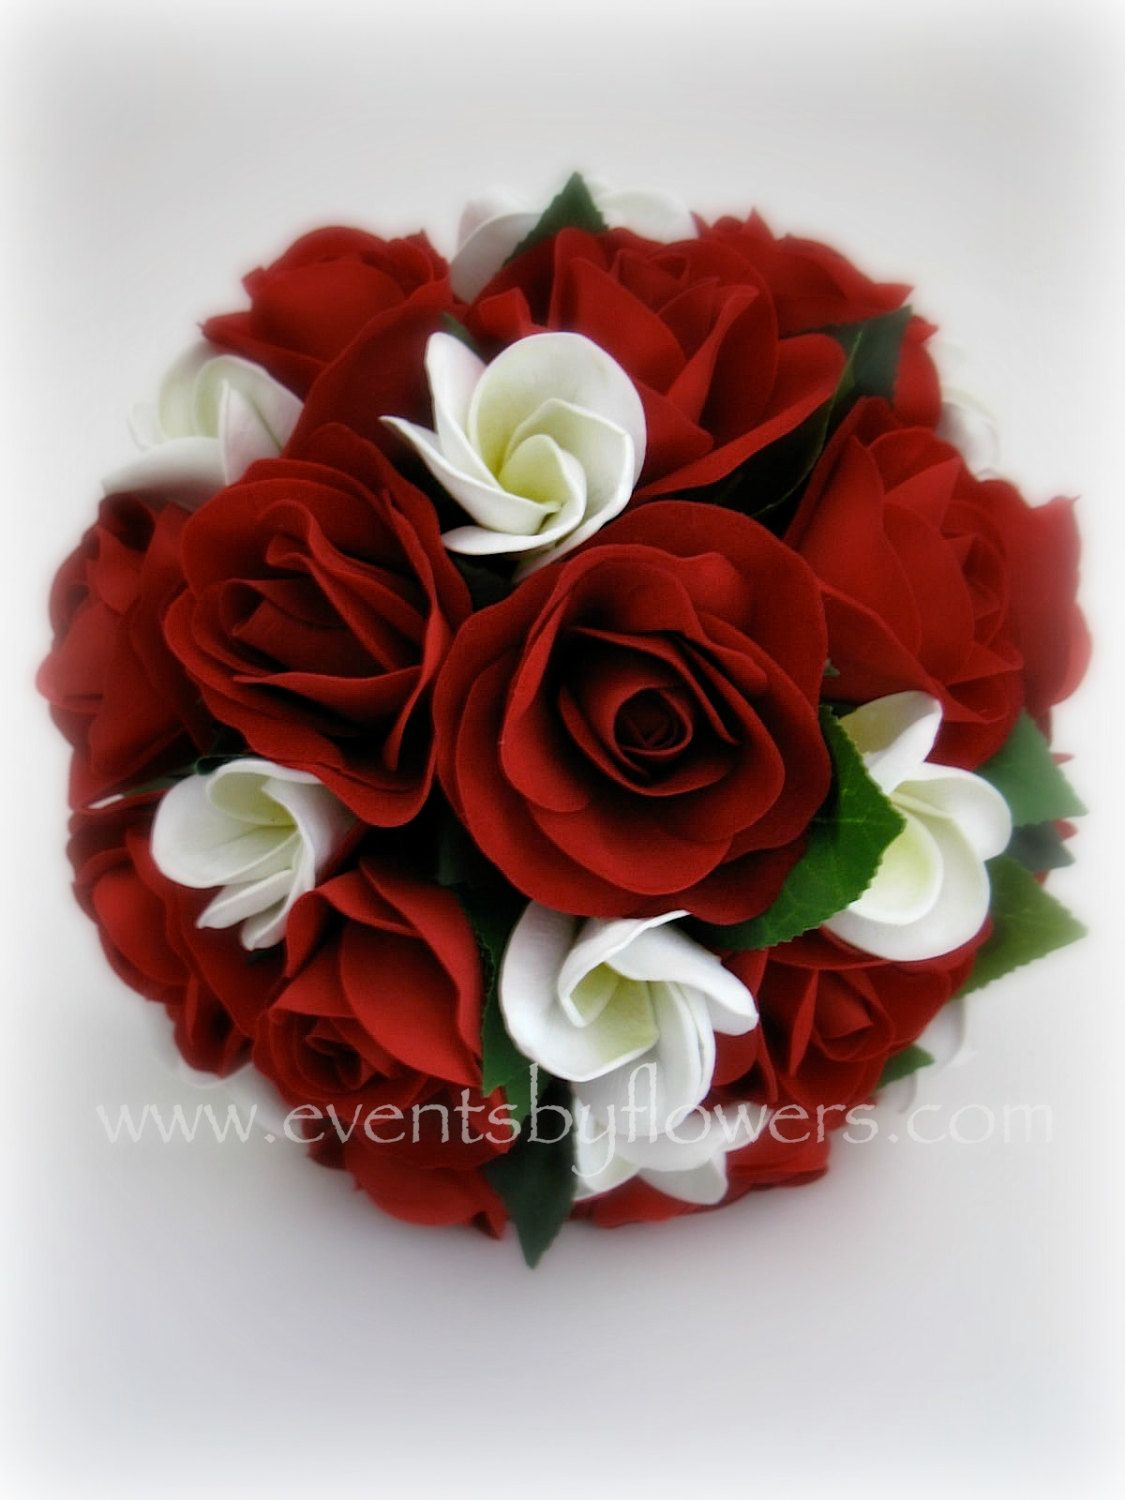 Real Touch Frangipani Red Roses Wedding Flowers Bouquet 110 00 Via Etsy